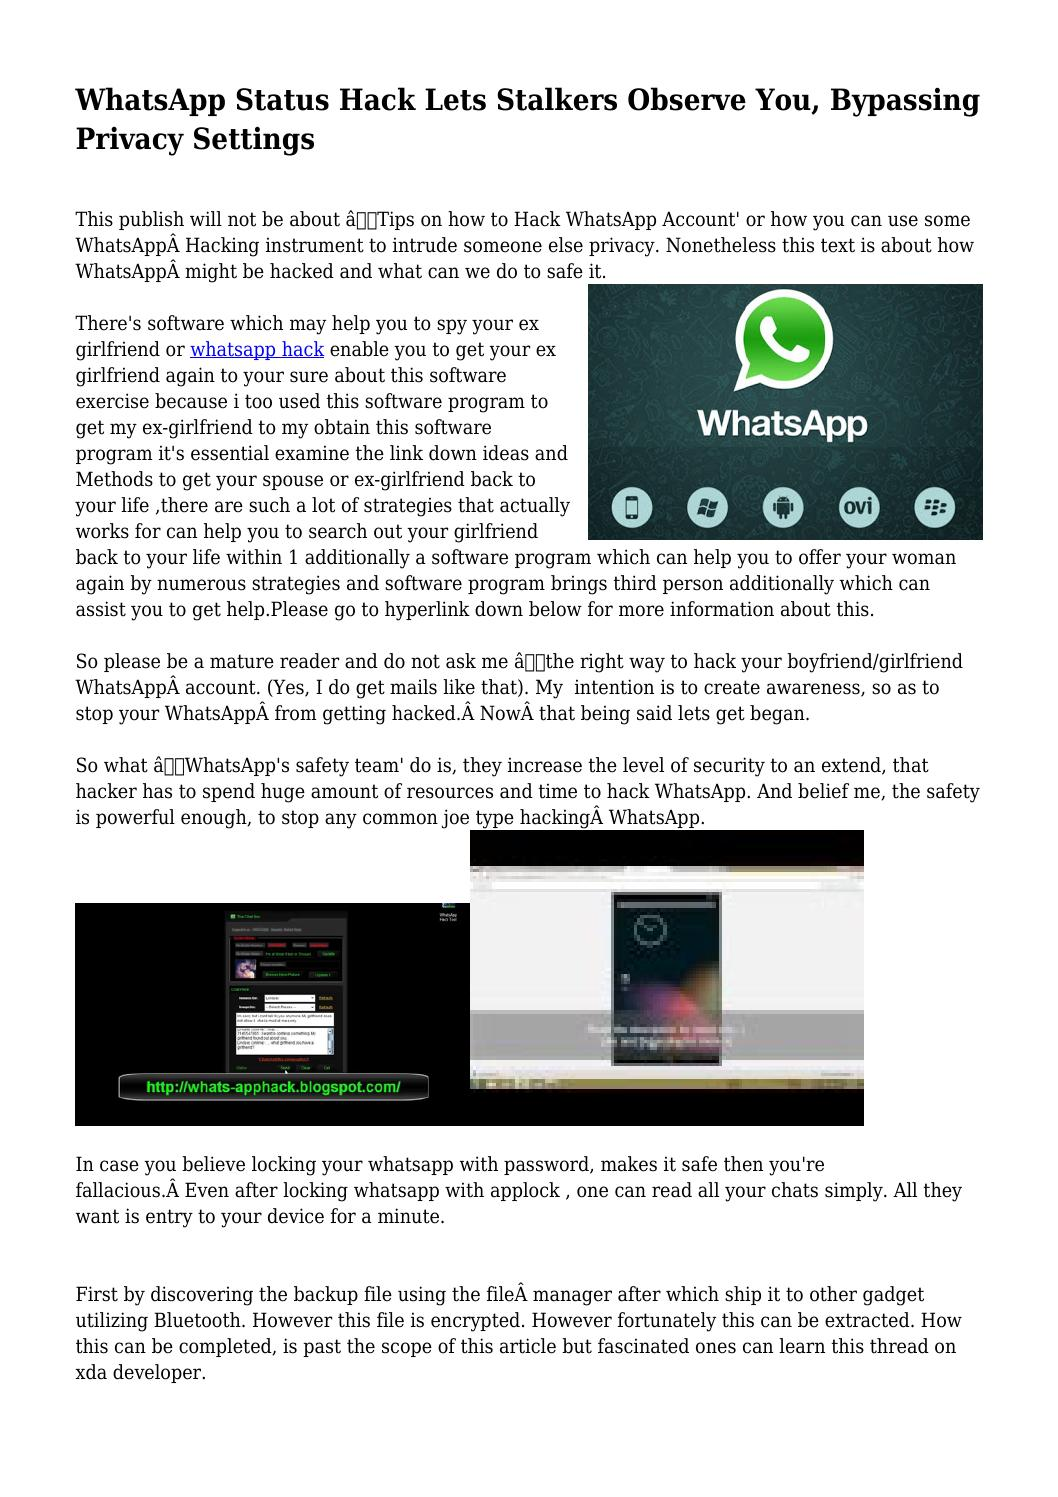 WhatsApp Status Hack Lets Stalkers Observe You, Bypassing